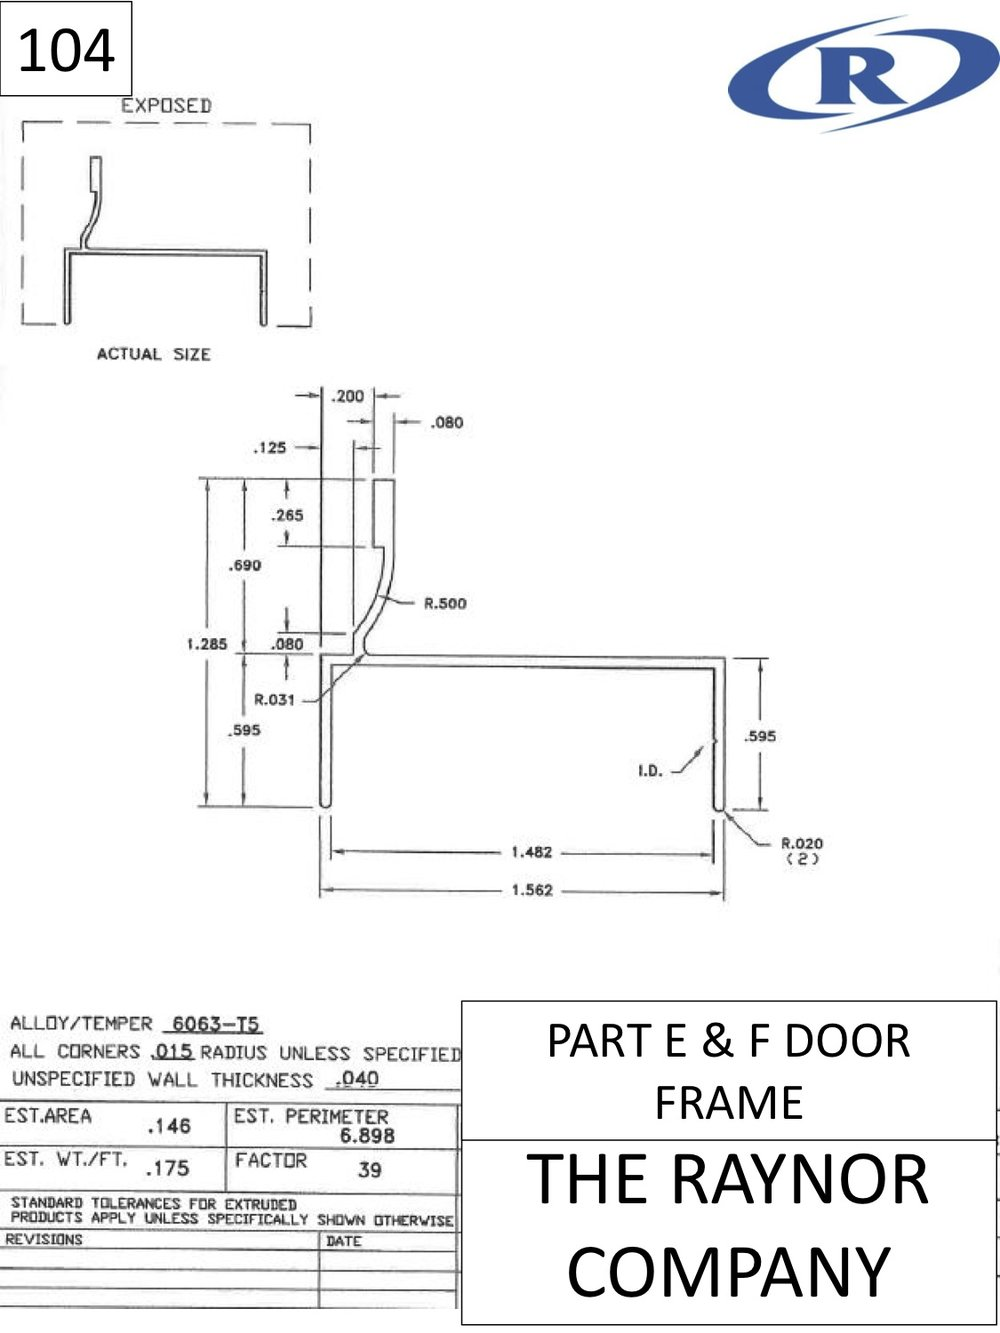 Part E & F Door Frame -